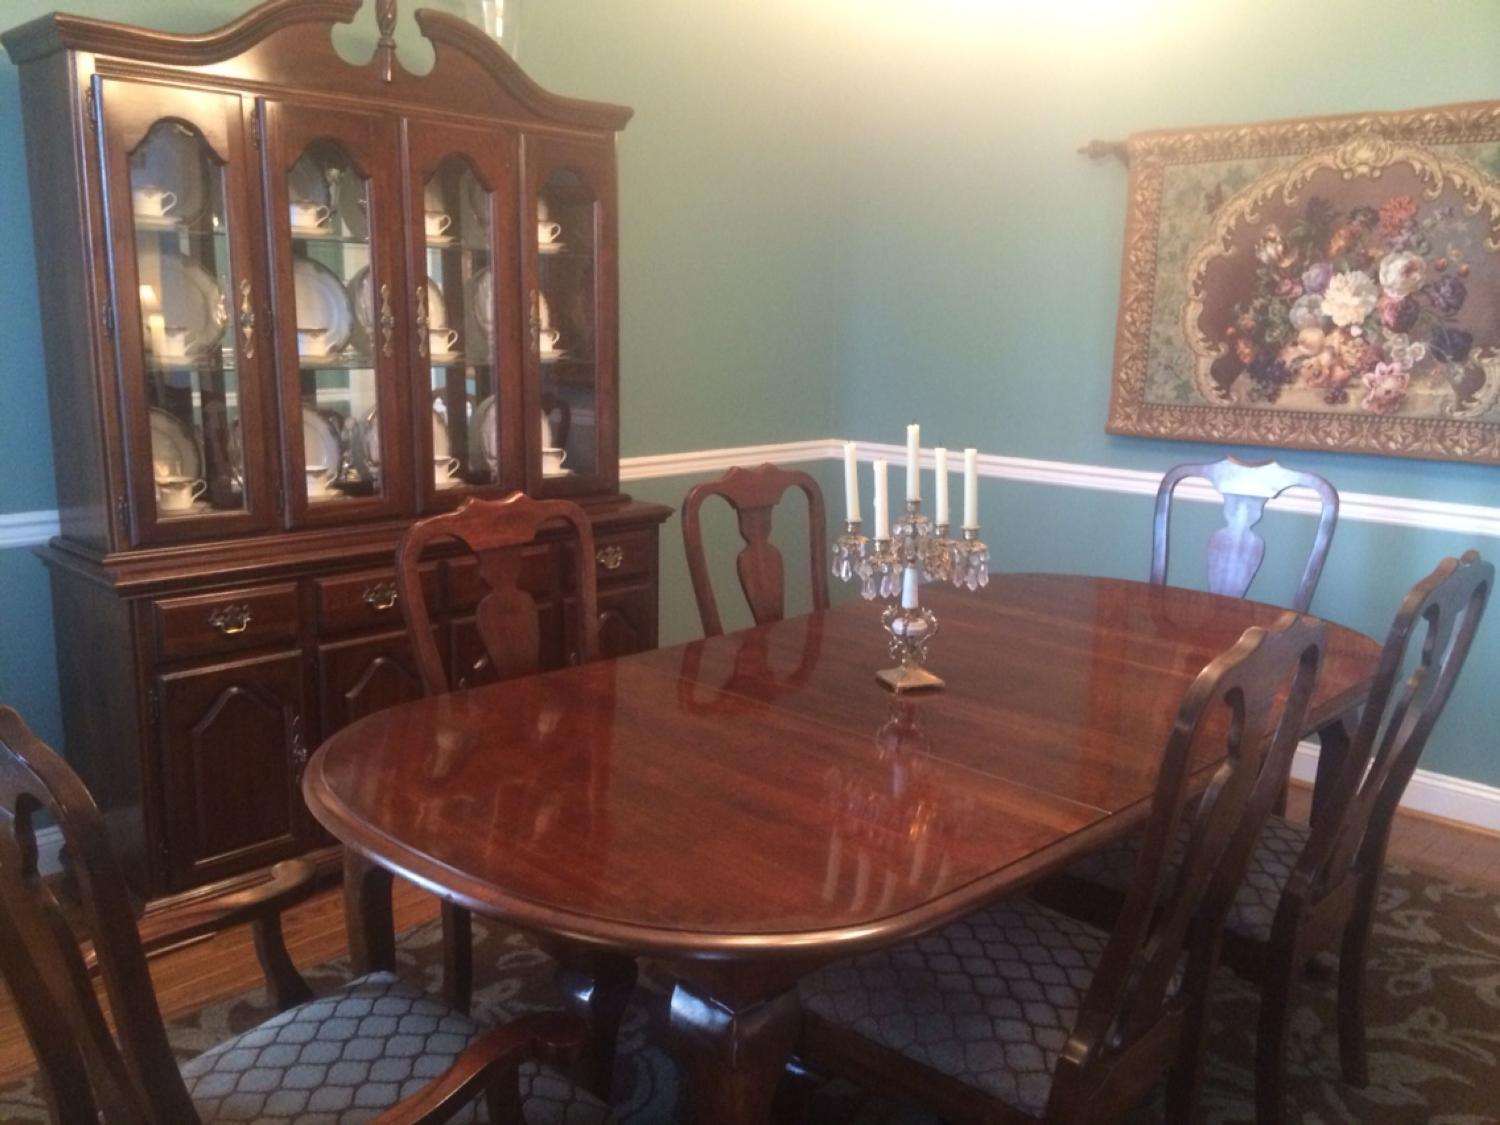 Find More Beautiful Kincaid Cherry Dining Room Set Table With Two Leaves 6 Chairs Hutch For Sale At Up To 90 Off